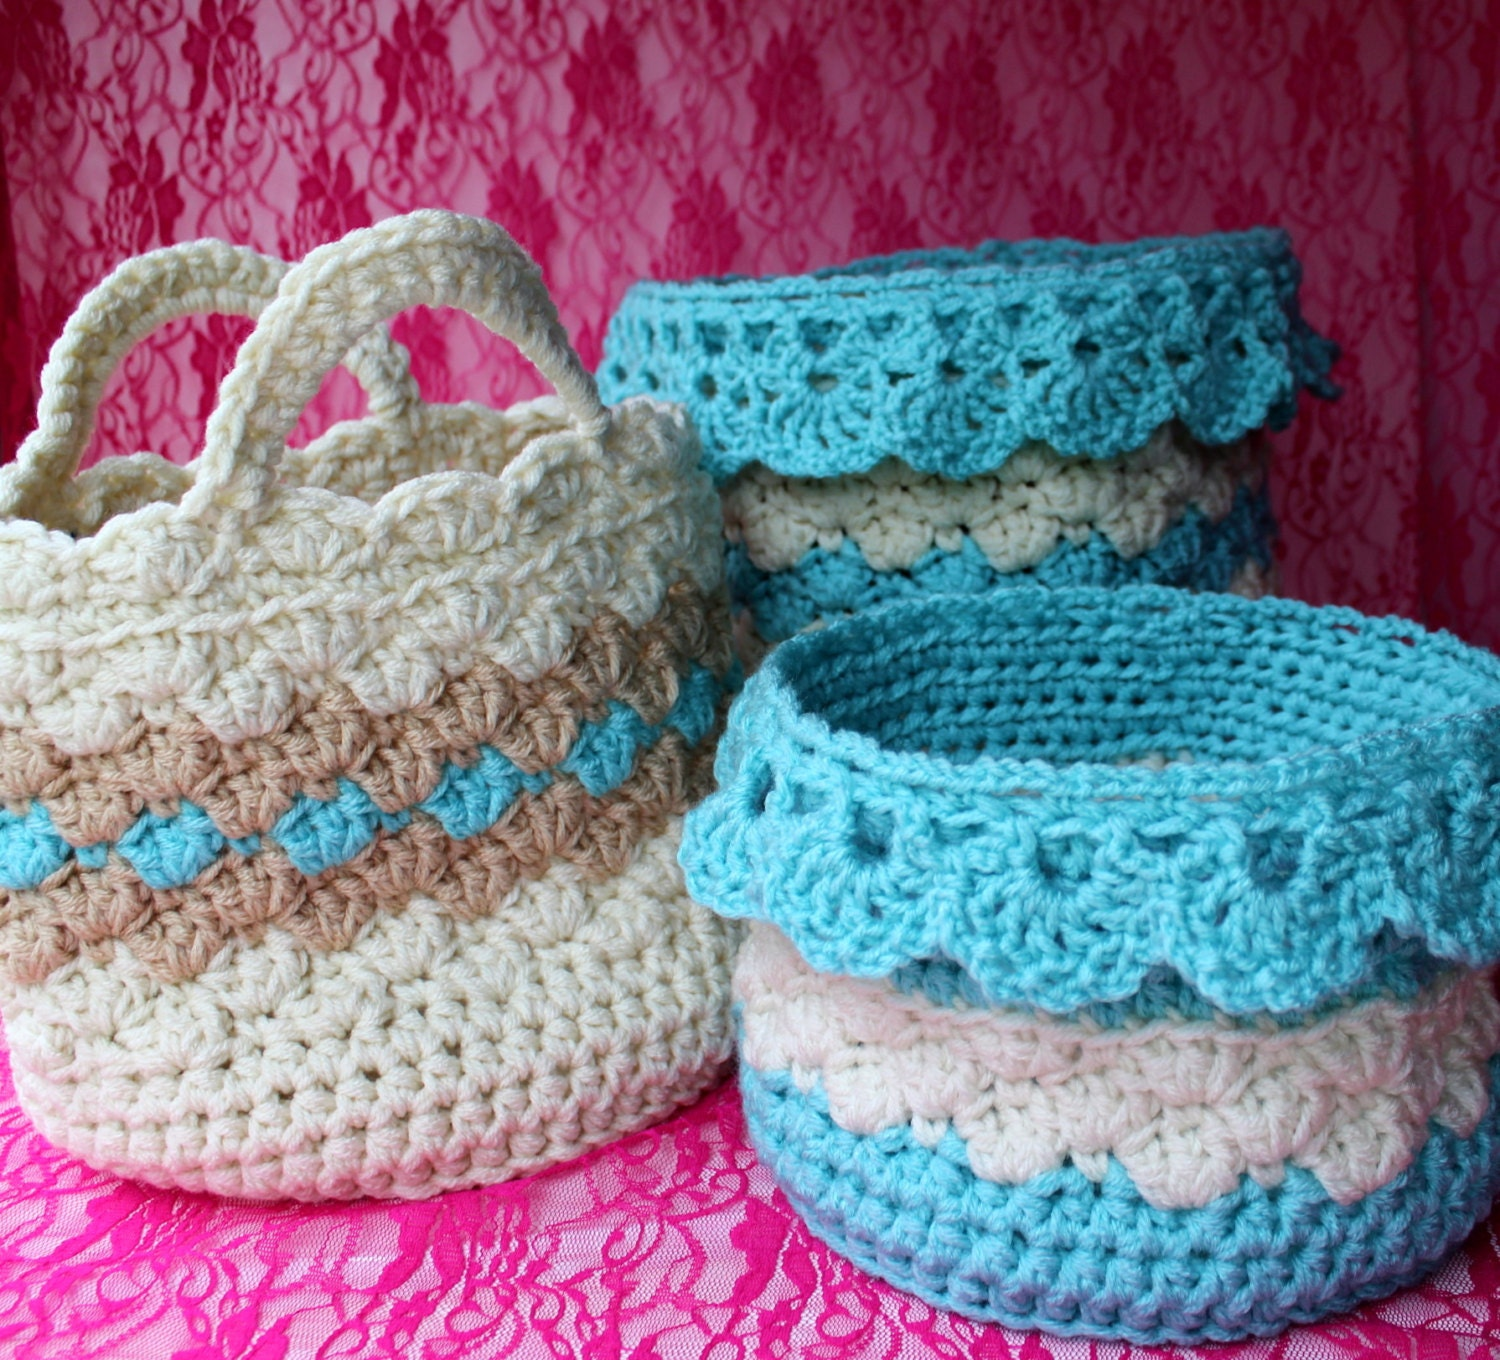 Ebook large crochet basket patterns drop over lace edge this is a digital file bankloansurffo Image collections